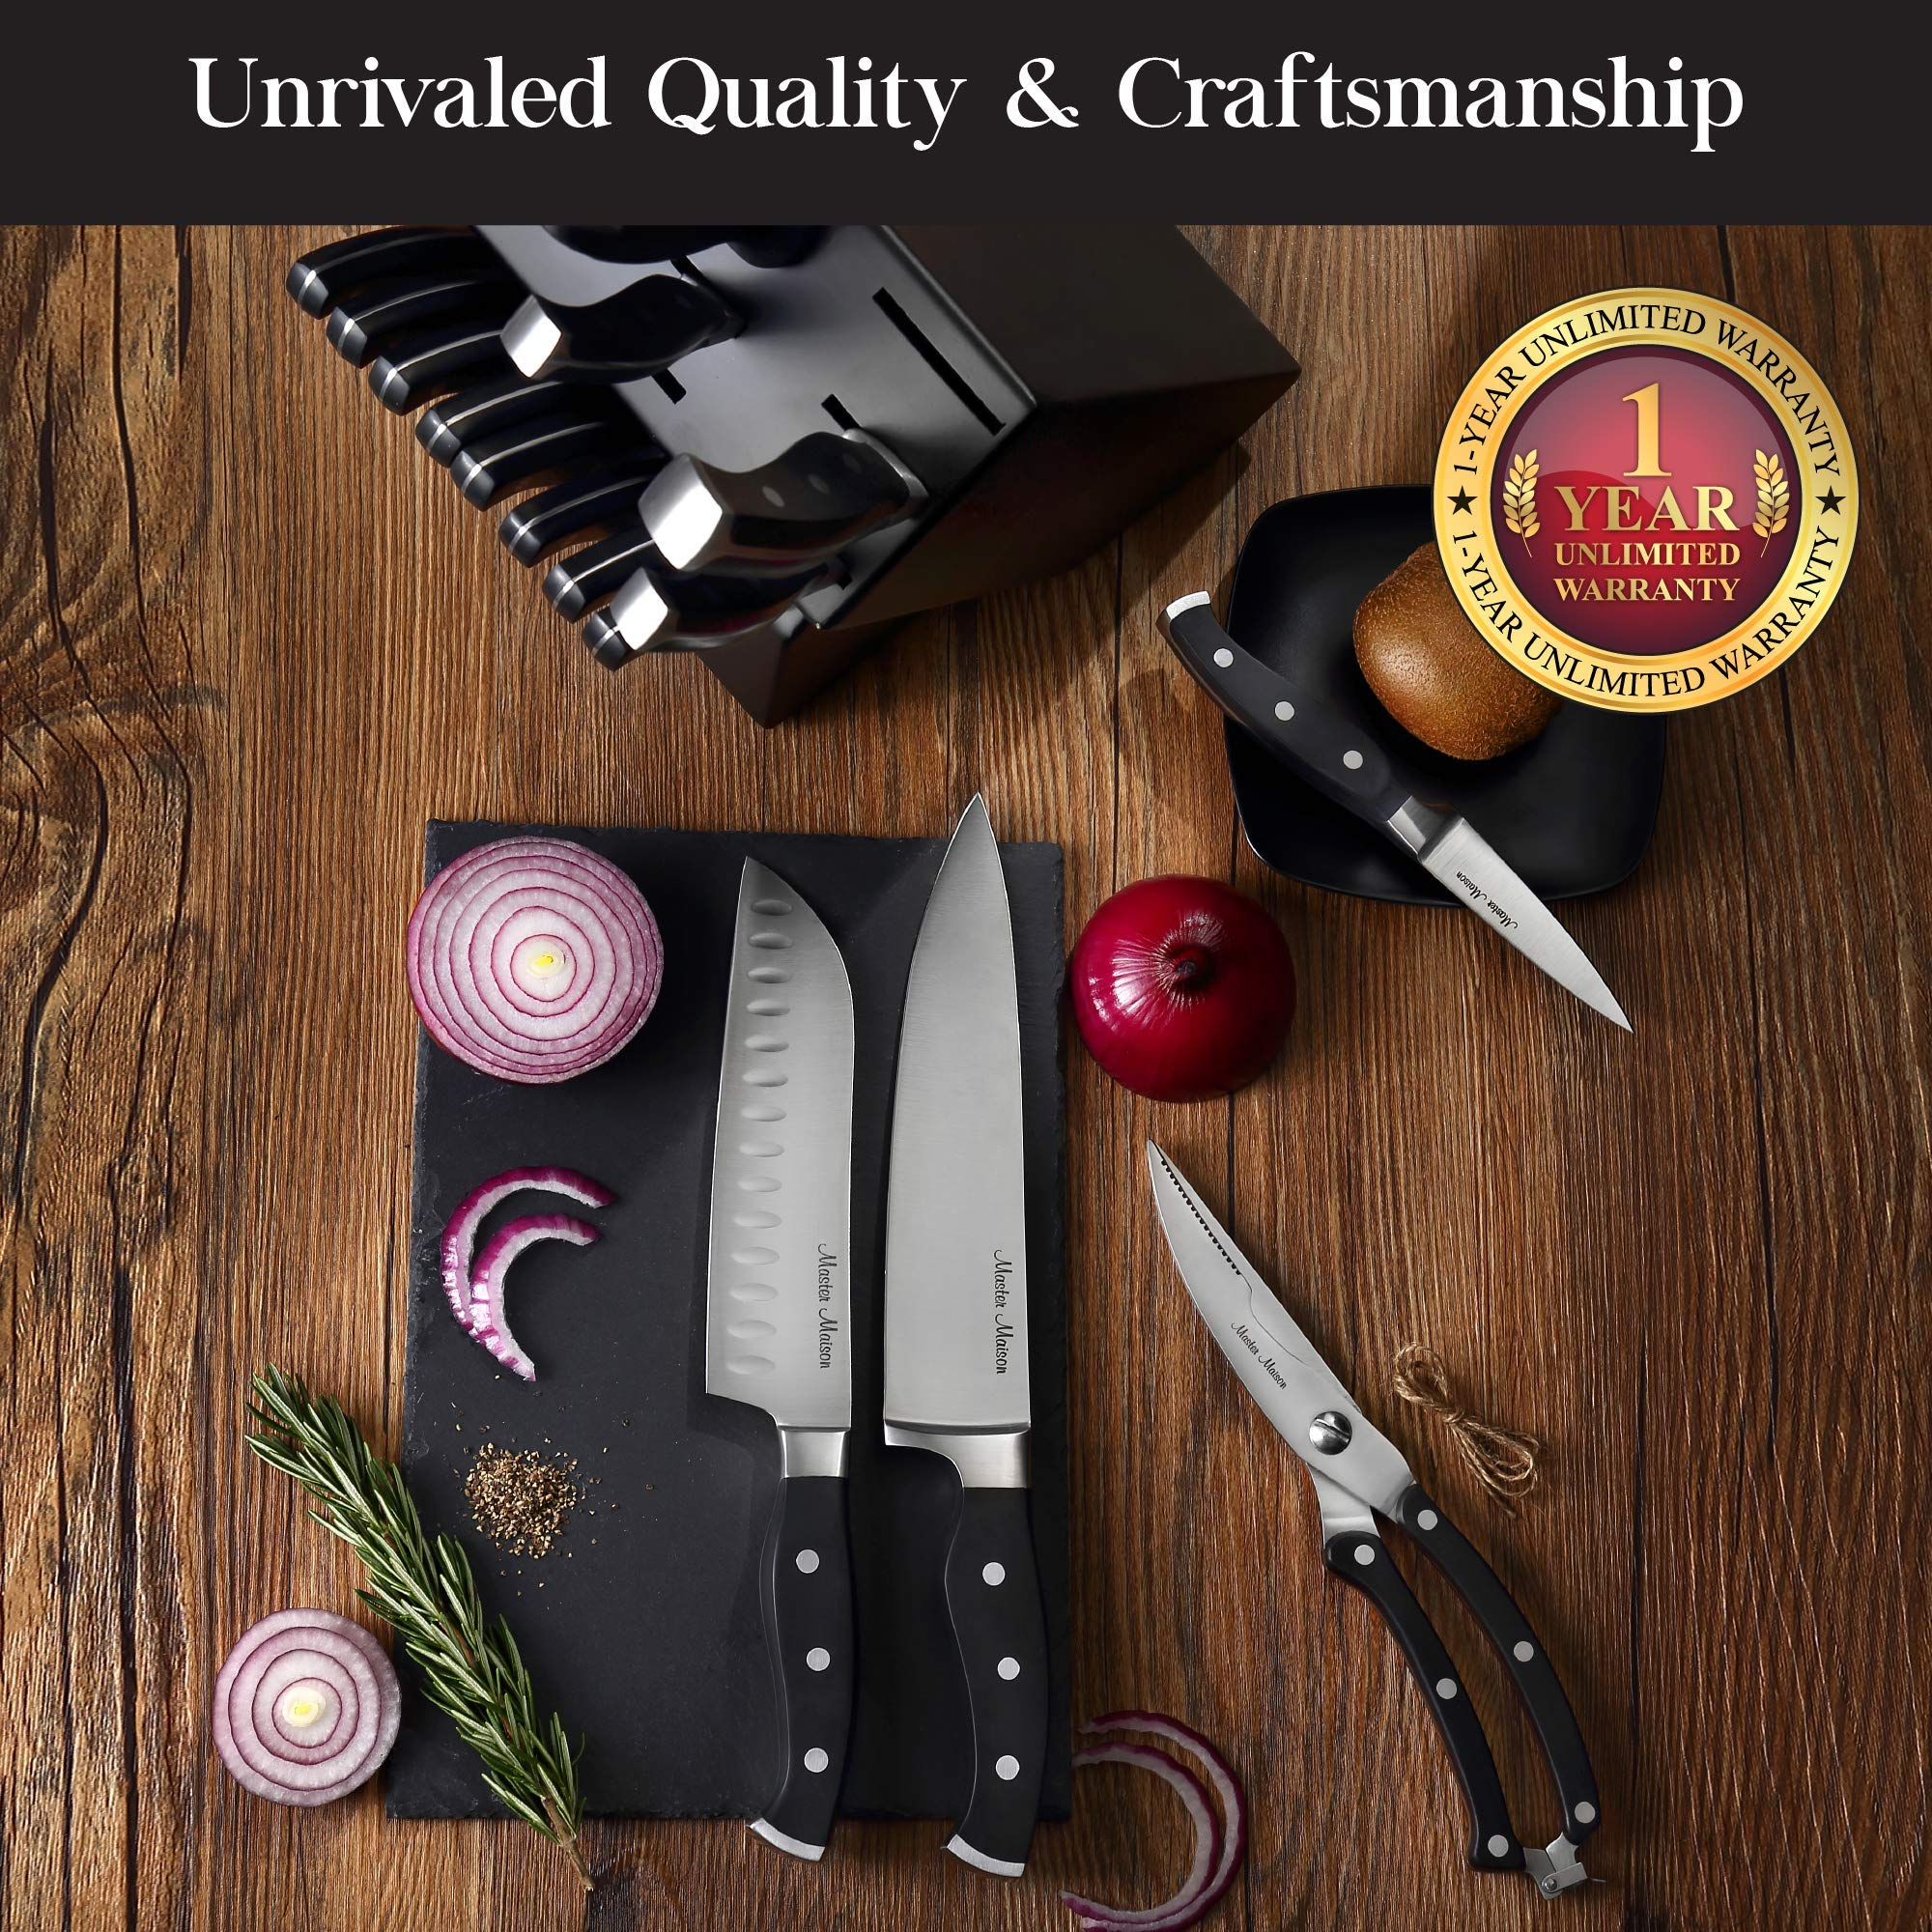 19-Piece Premium Kitchen Knife Set With Wooden Block | Master Maison German Stainless Steel Cutlery With Knife Sharpener & 8 Steak Knives by Master Maison (Image #6)